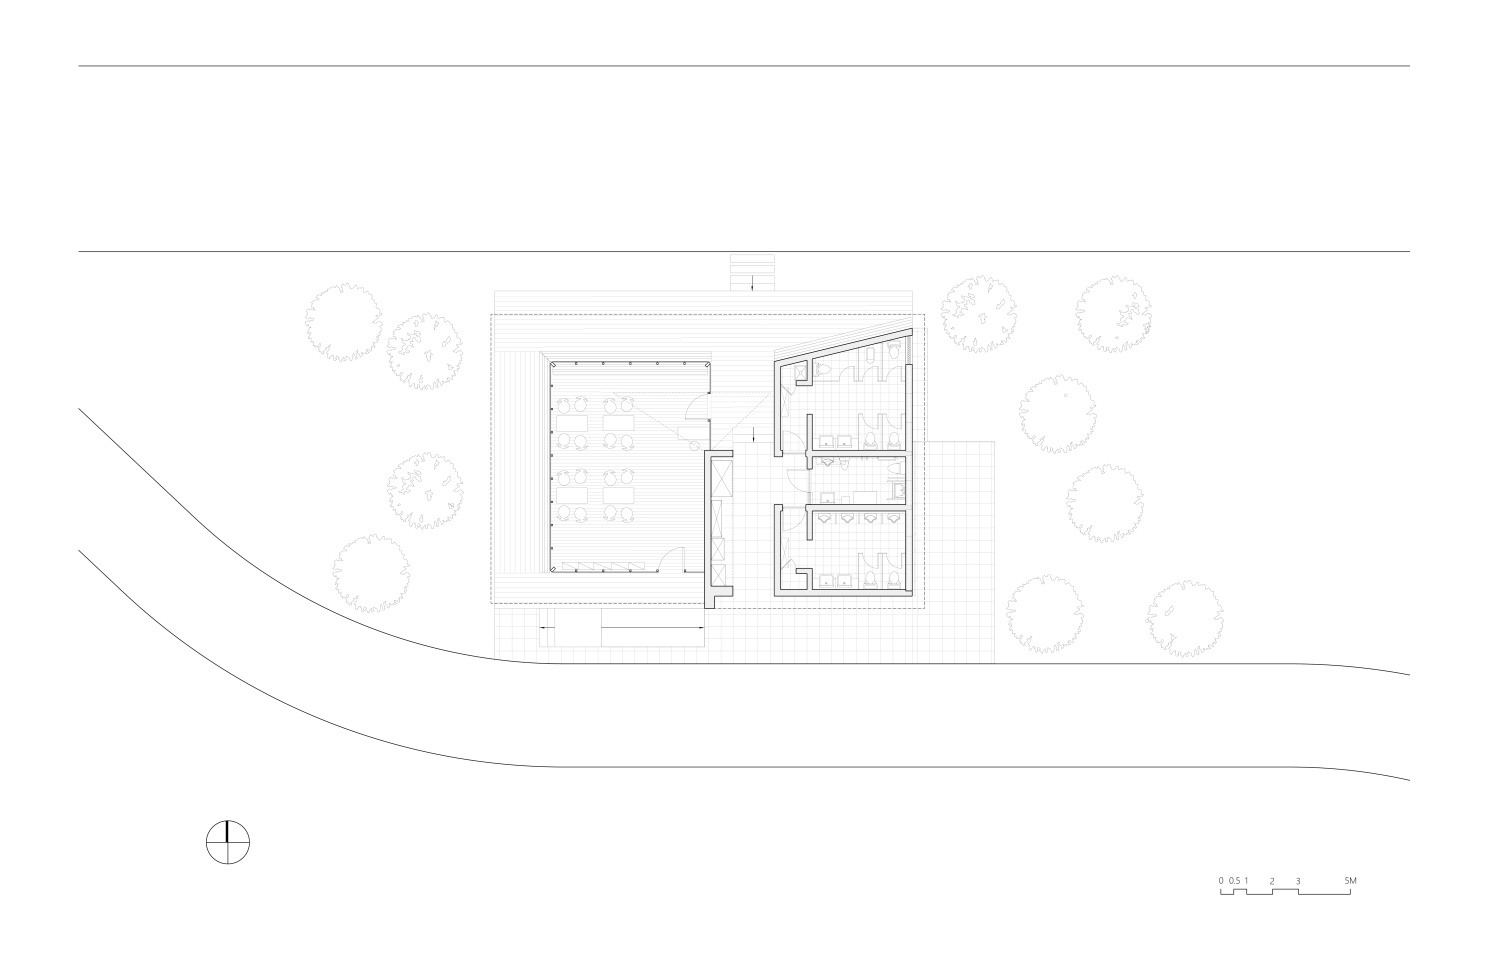 First Floor Plan of River View Service Station No. 4 Atelier Z+}